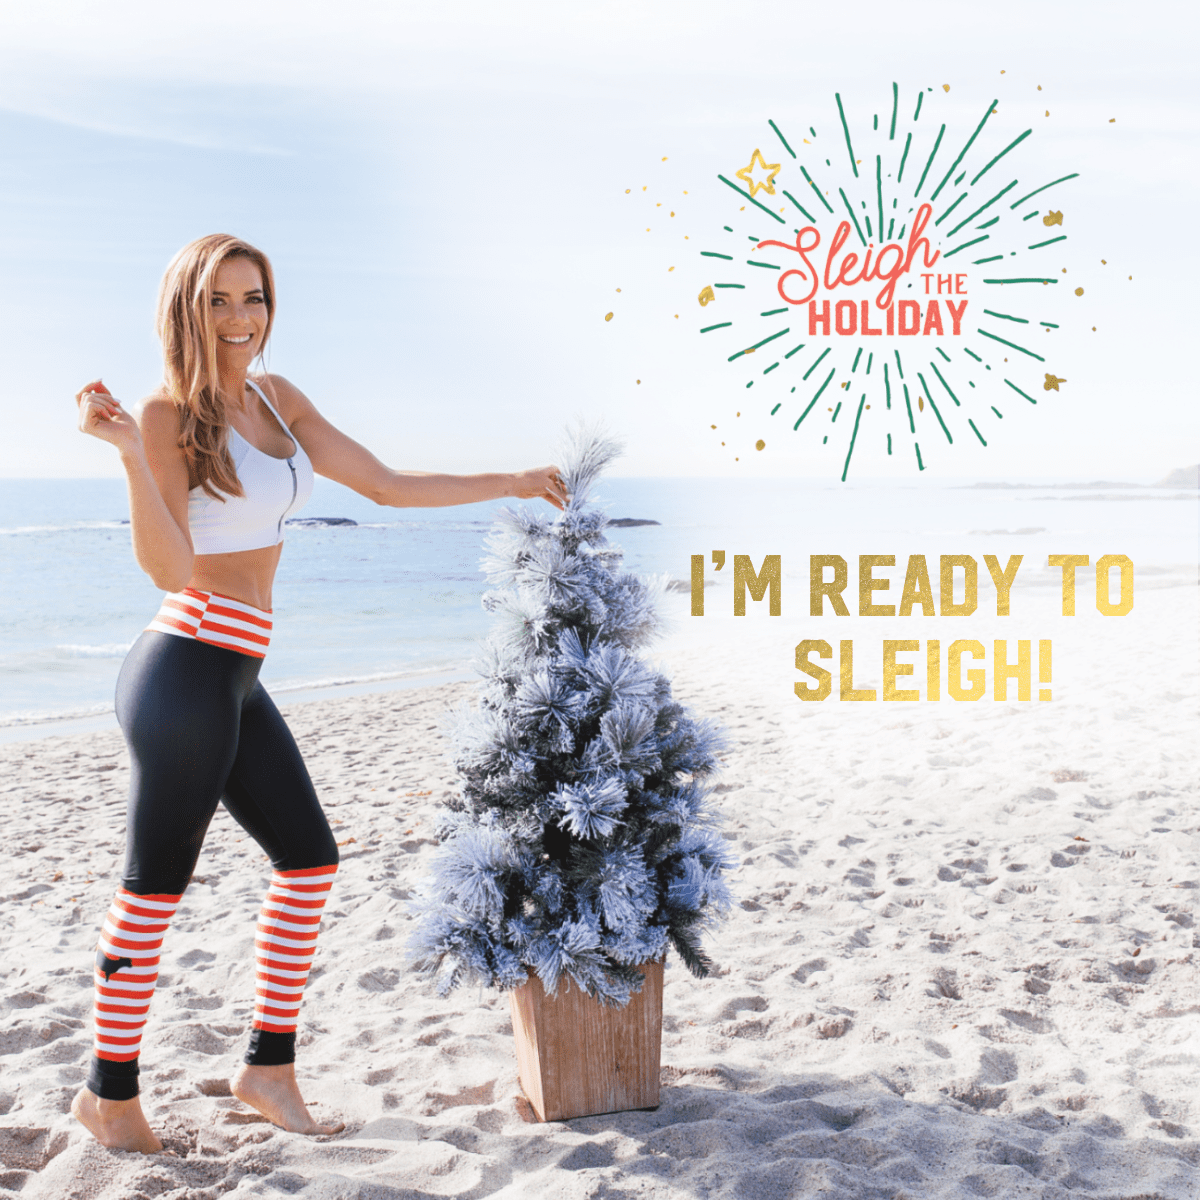 Everything You Need to Sleigh the Holiday, free daily workouts, holiday challenge, fitness challenge, fitness, giveaways, holiday, women's workouts, at home daily workouts, at home exercises, workouts for women, weekly workouts